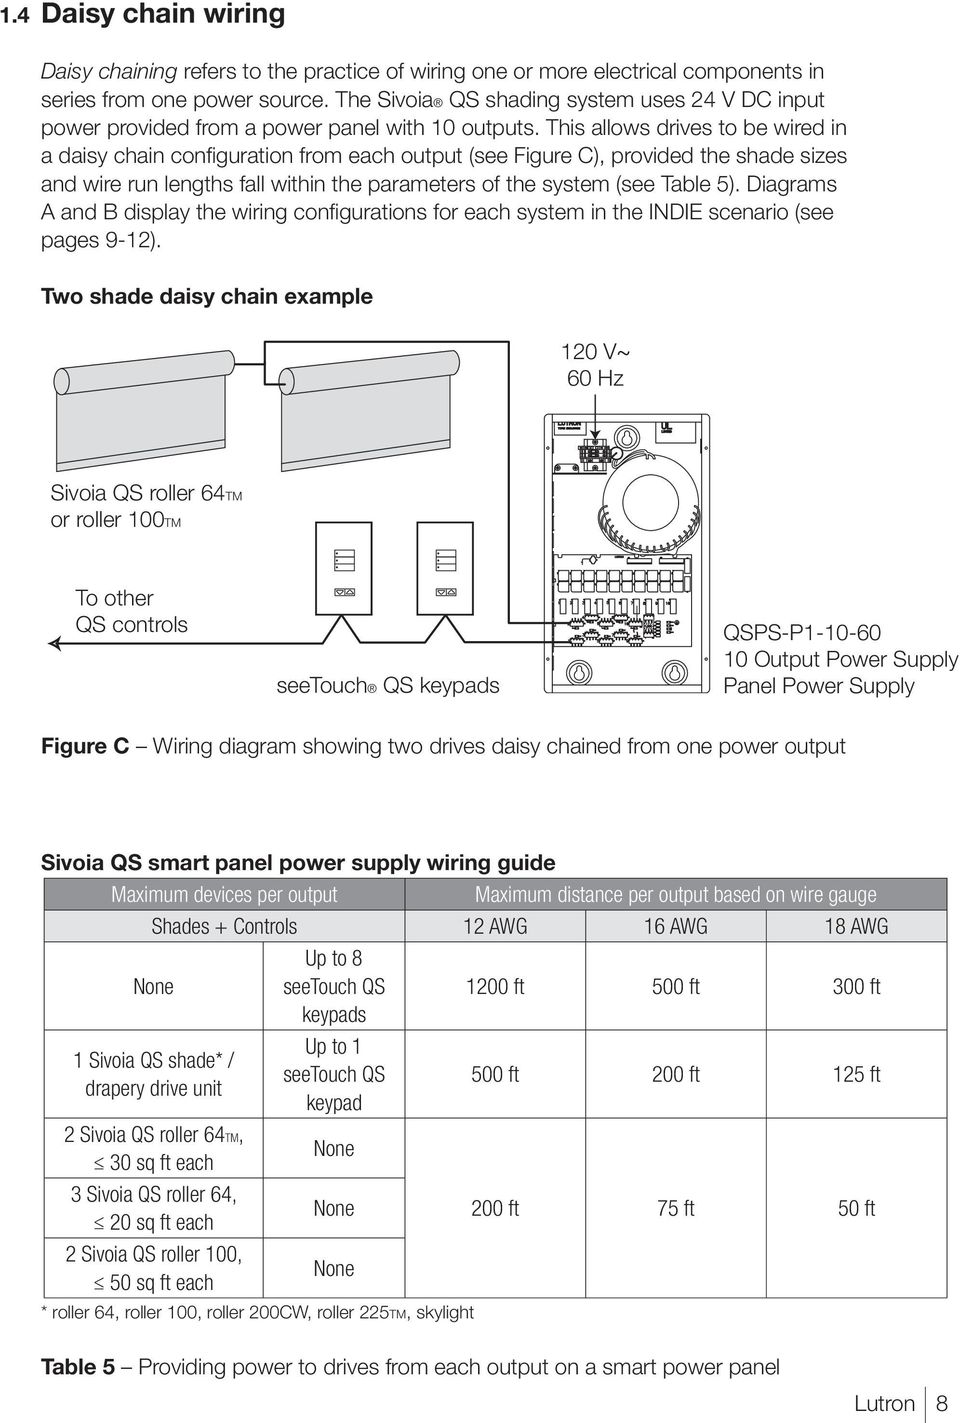 Total Installed Cost Comparison Study Of Motorized Shading Systems Lutron Homeworks Wiring Diagram This Allows Drives To Be Wired In A Daisy Chain Confi Guration From Each Output